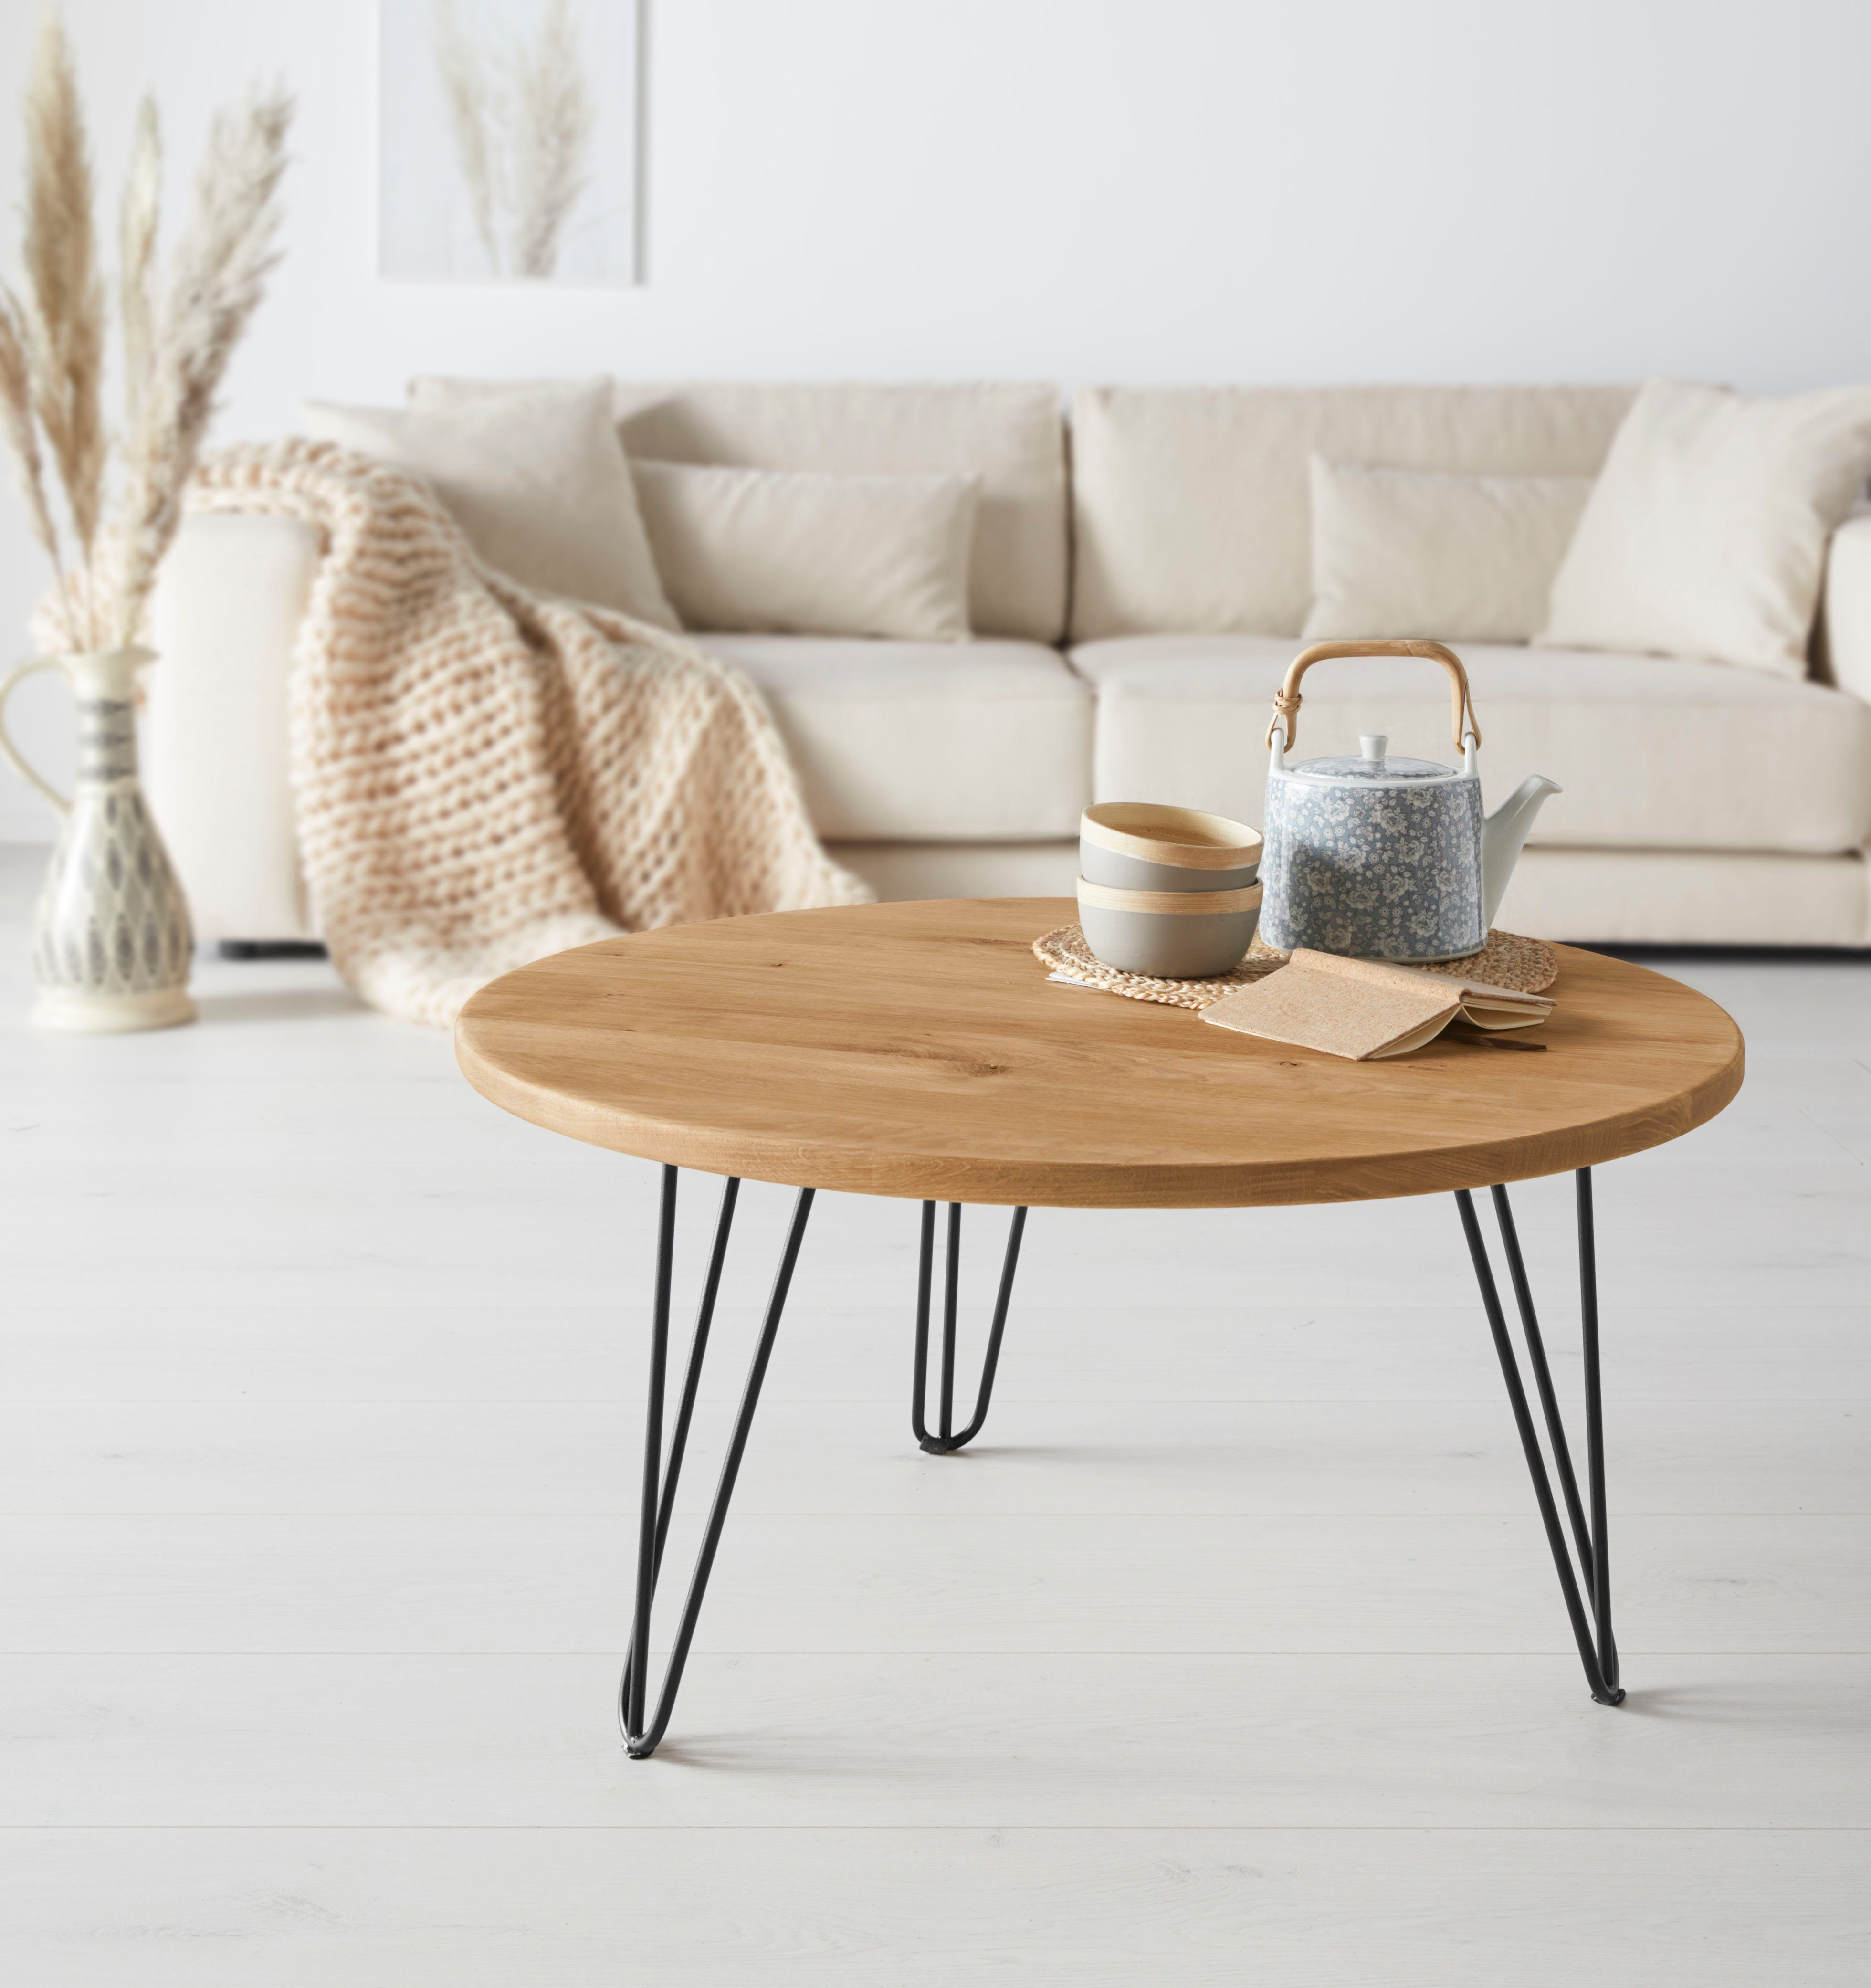 30 Zara Runder Couchtisch World Latest News